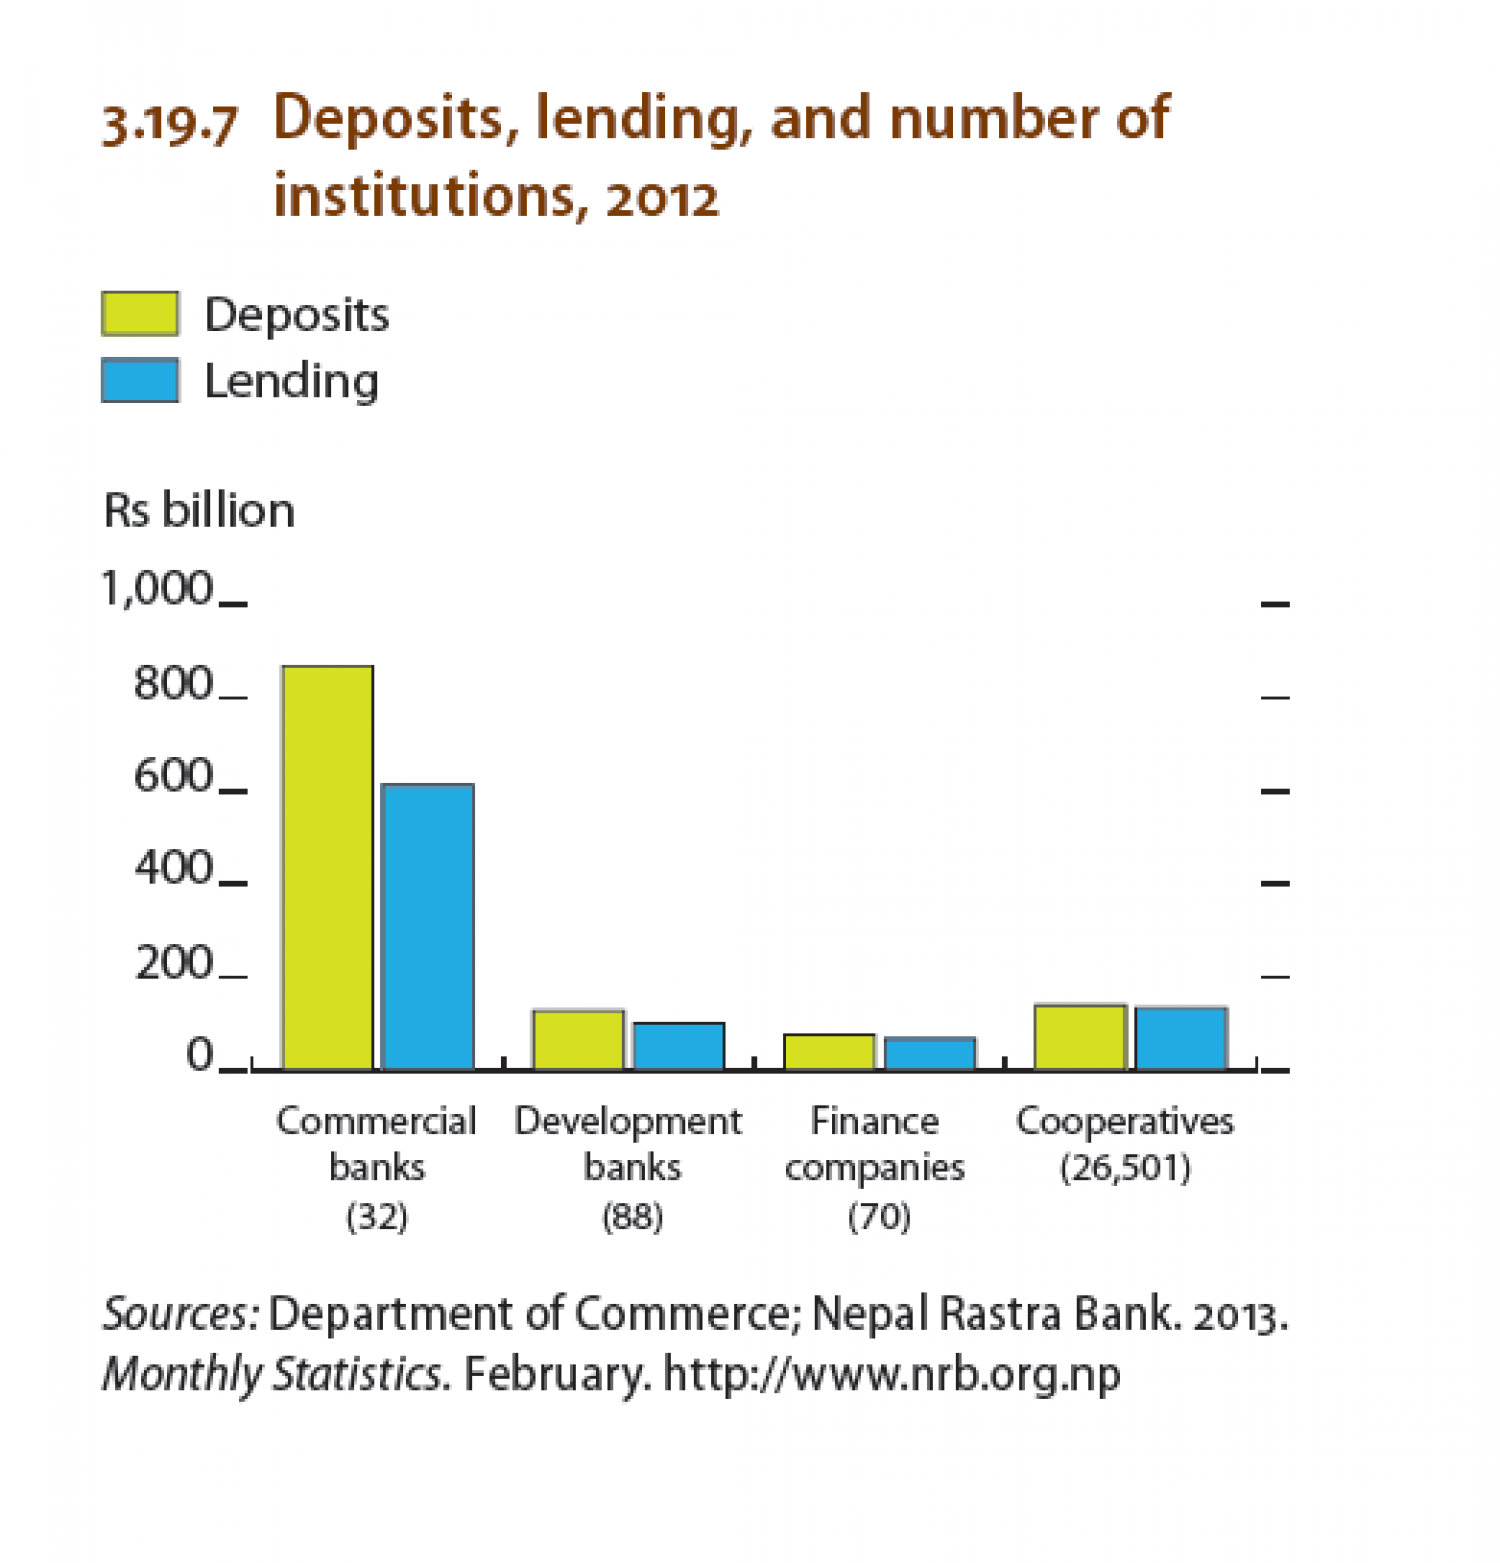 NEPAL - Deposits, lending and number of institutions , 2012 Infographic